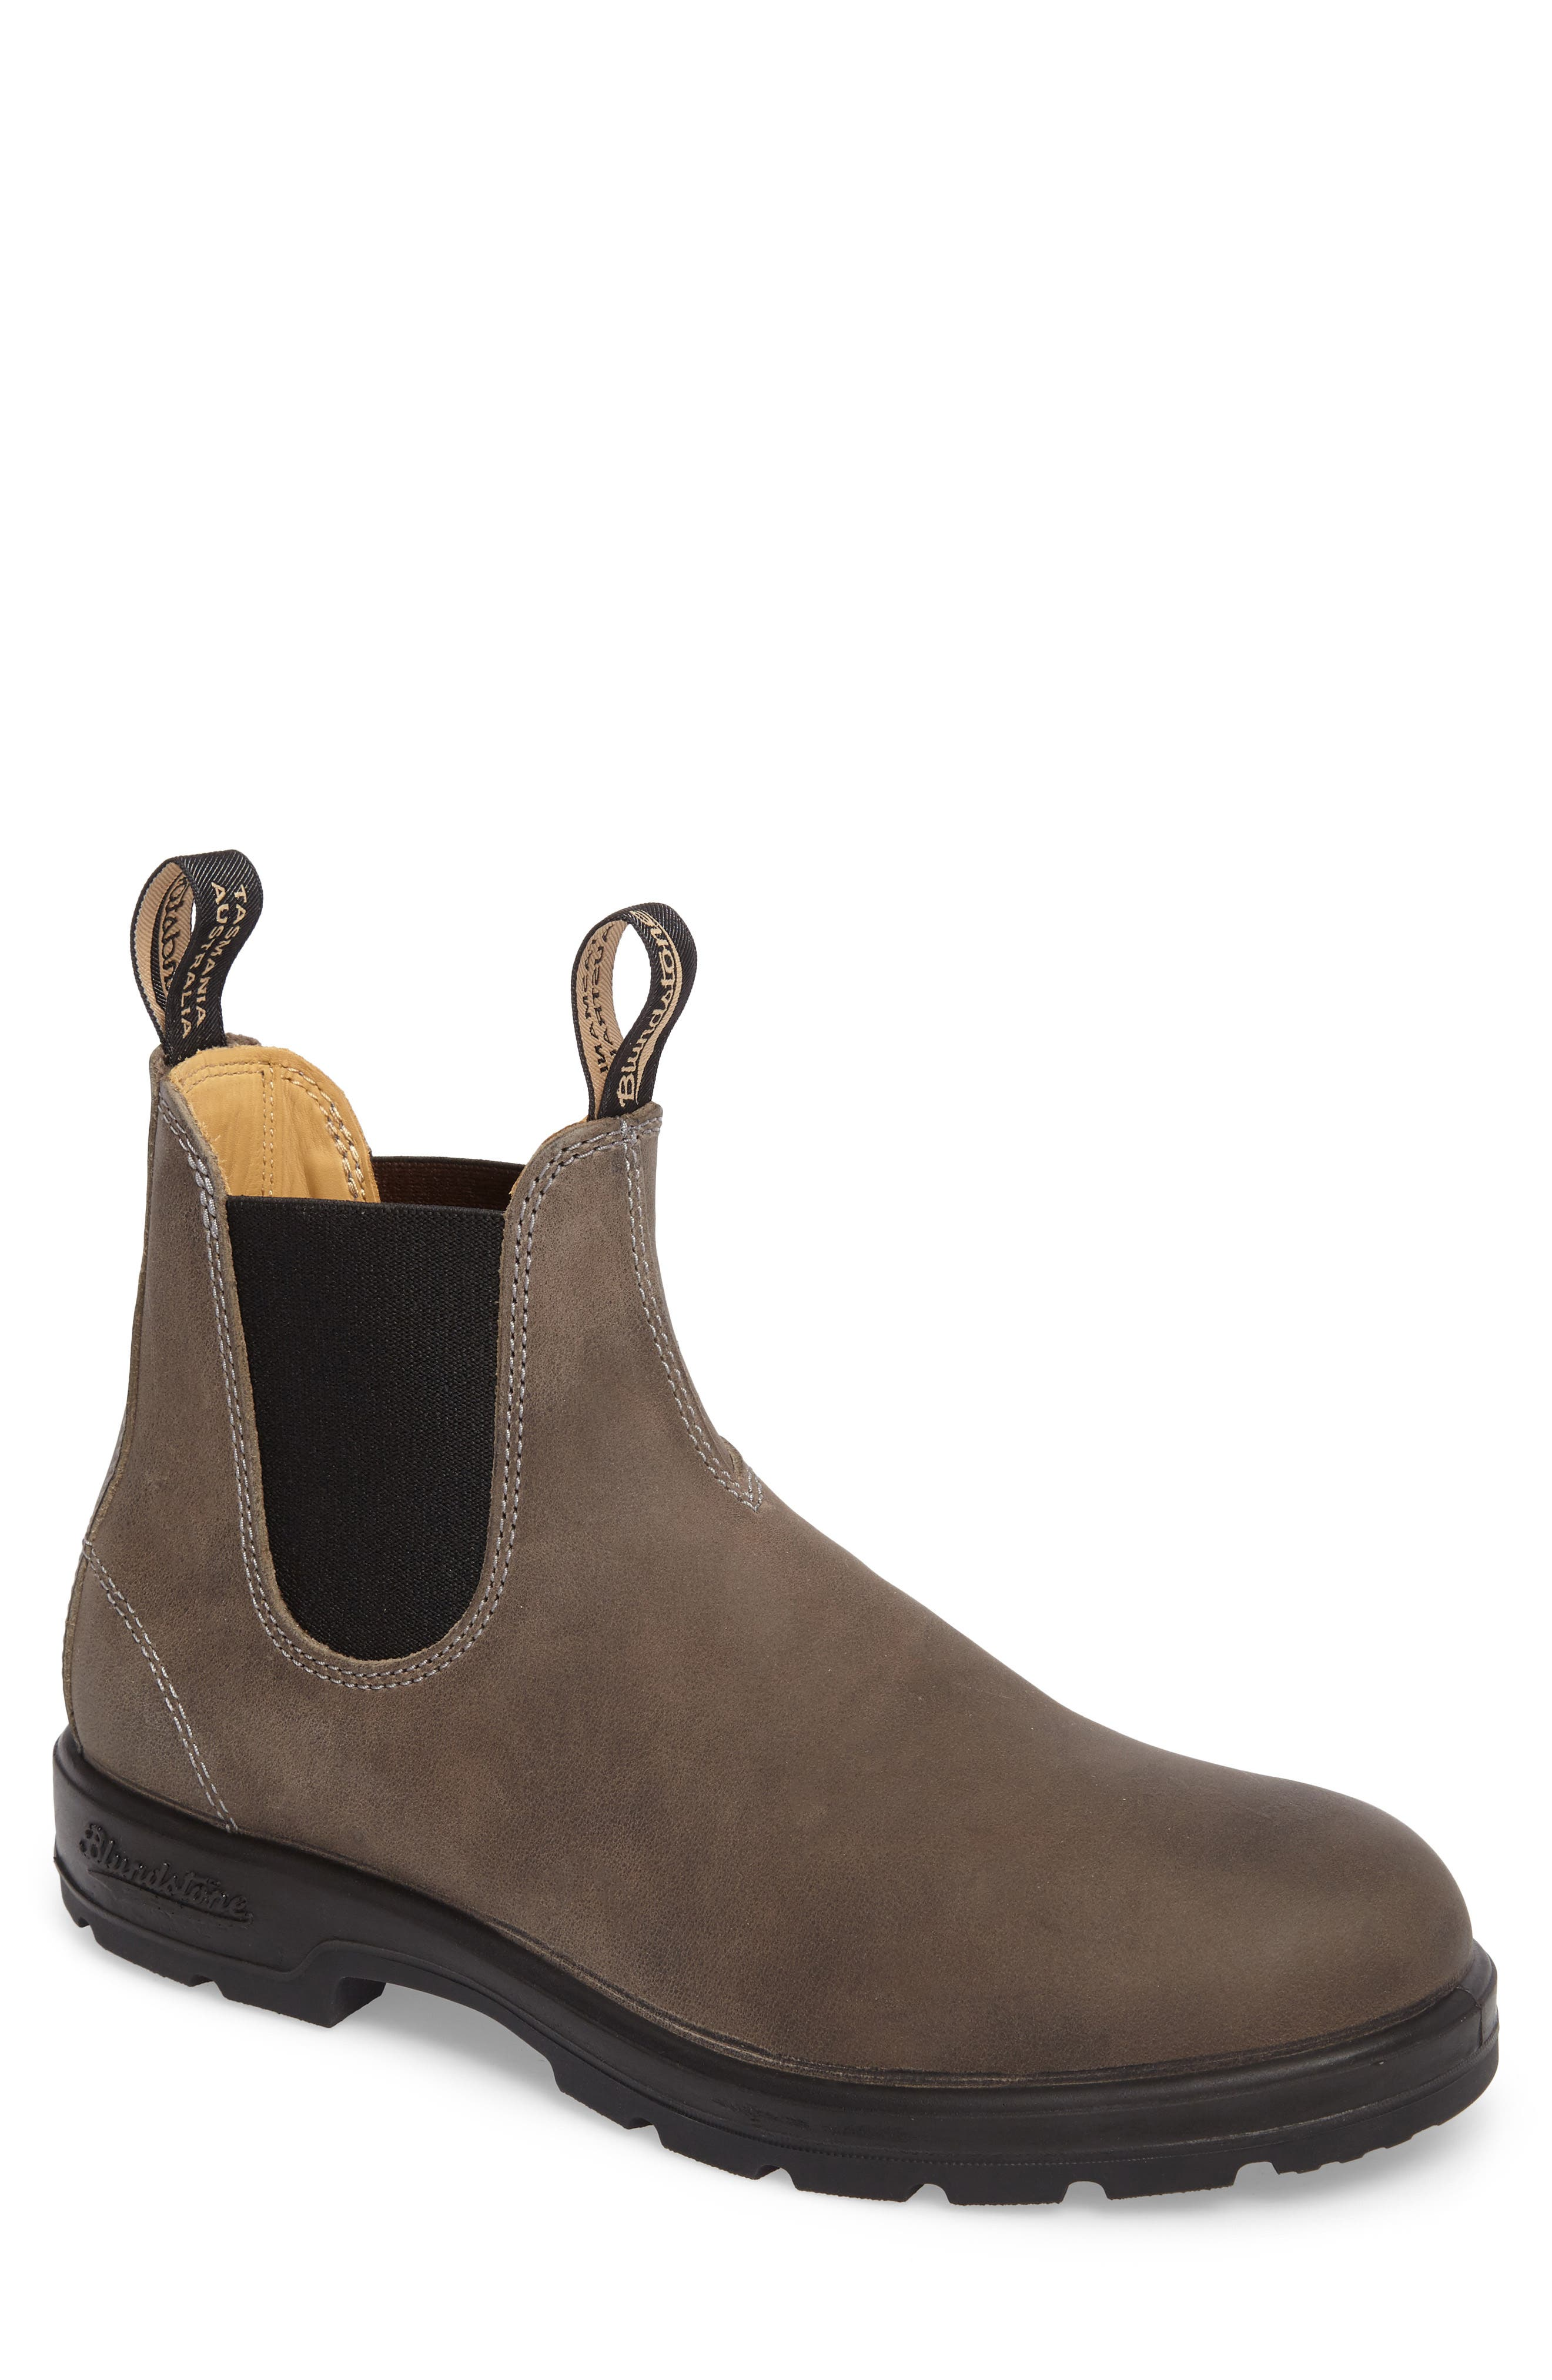 Footwear Chelsea Boot,                             Main thumbnail 1, color,                             Steel Grey Leather